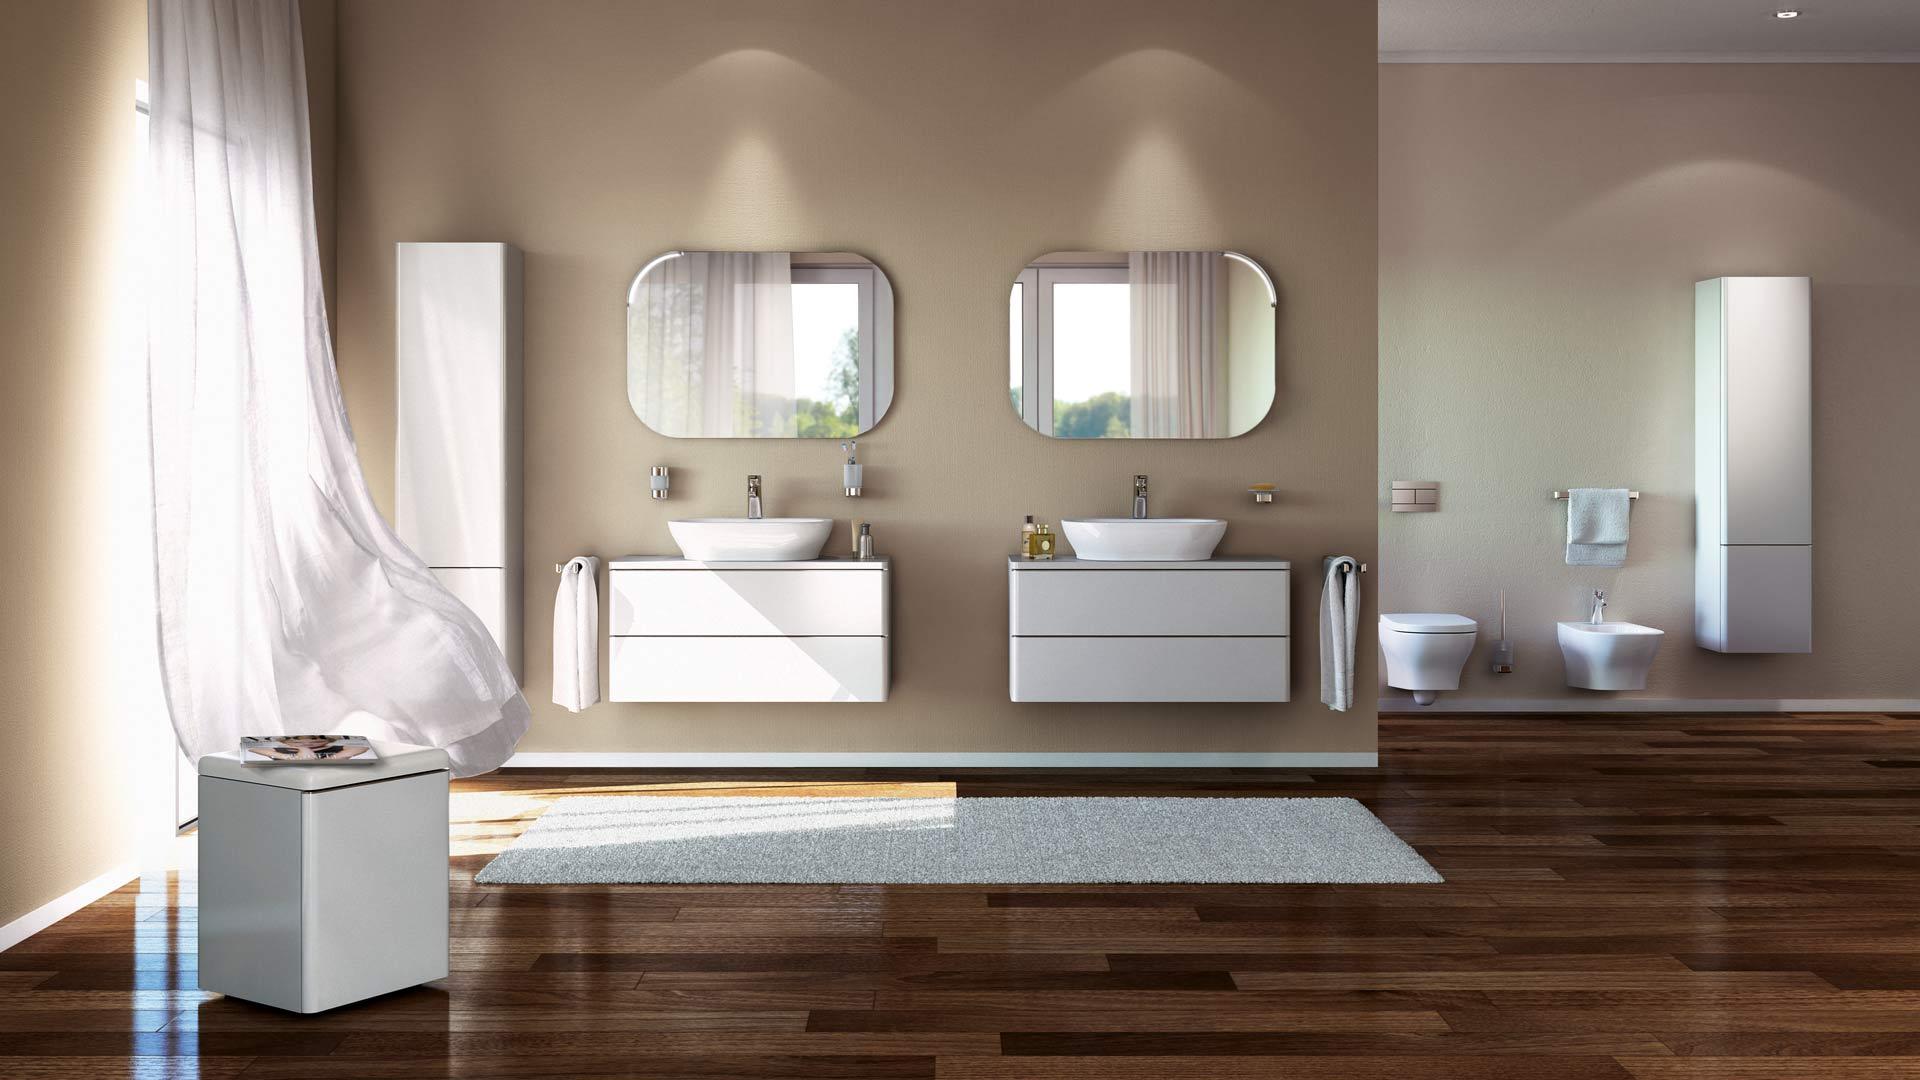 Amazing Satariano Luxury Bathroom And Home Products Of Top Quality Home Interior And Landscaping Oversignezvosmurscom